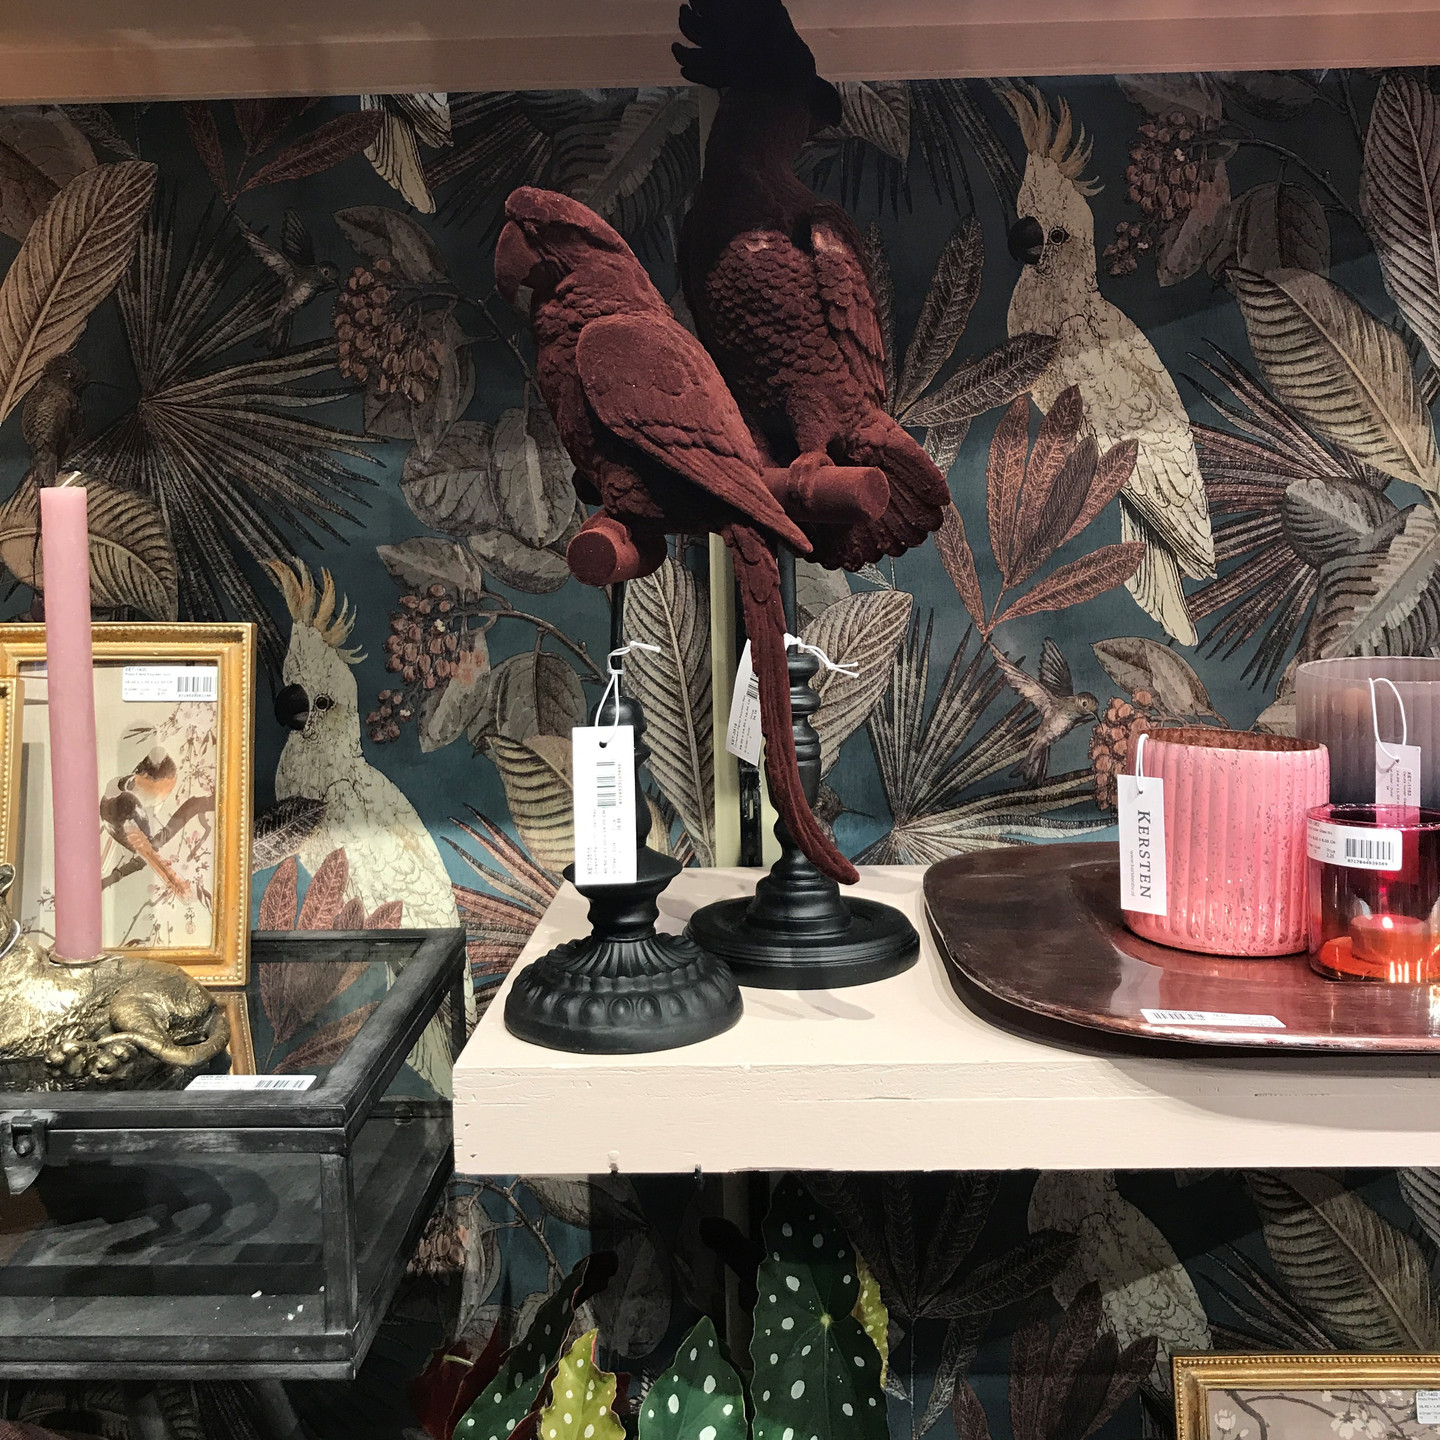 Home Decor Display at Maison & Objet with Tropical Print Wallpaper and Velvet Parrot Statues